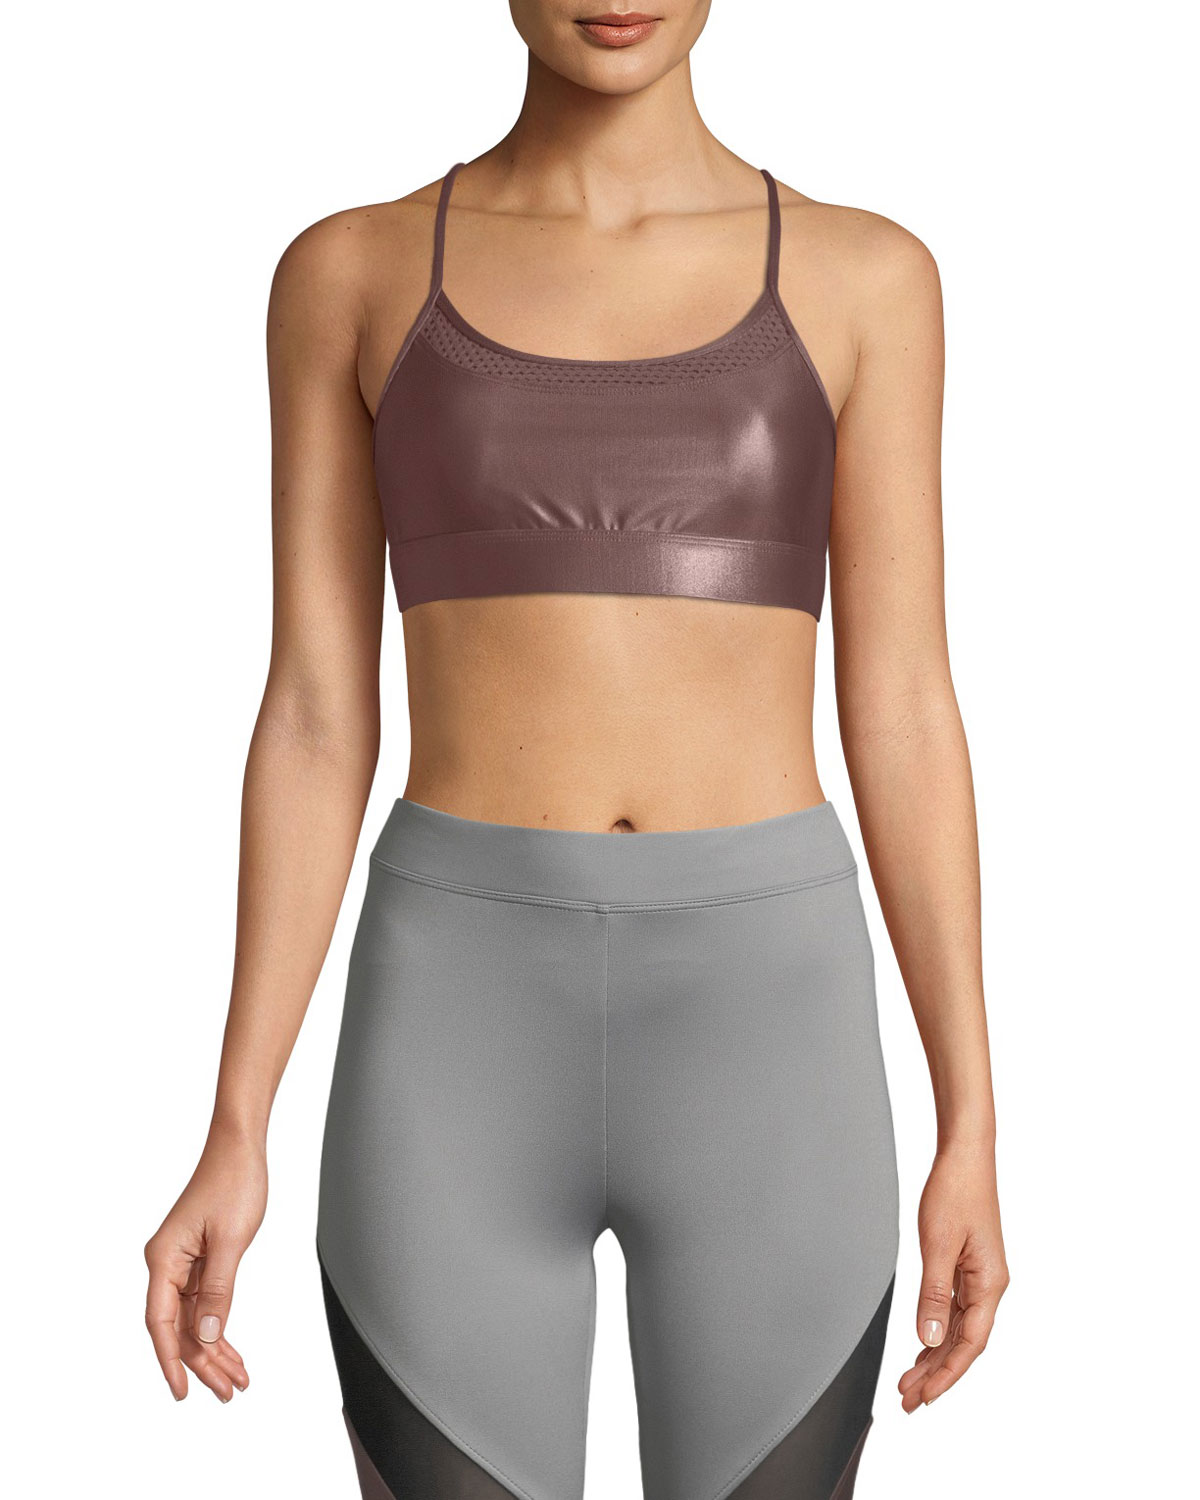 Koral Pacifica Low-Impact Racerback Metallic Sports Bra